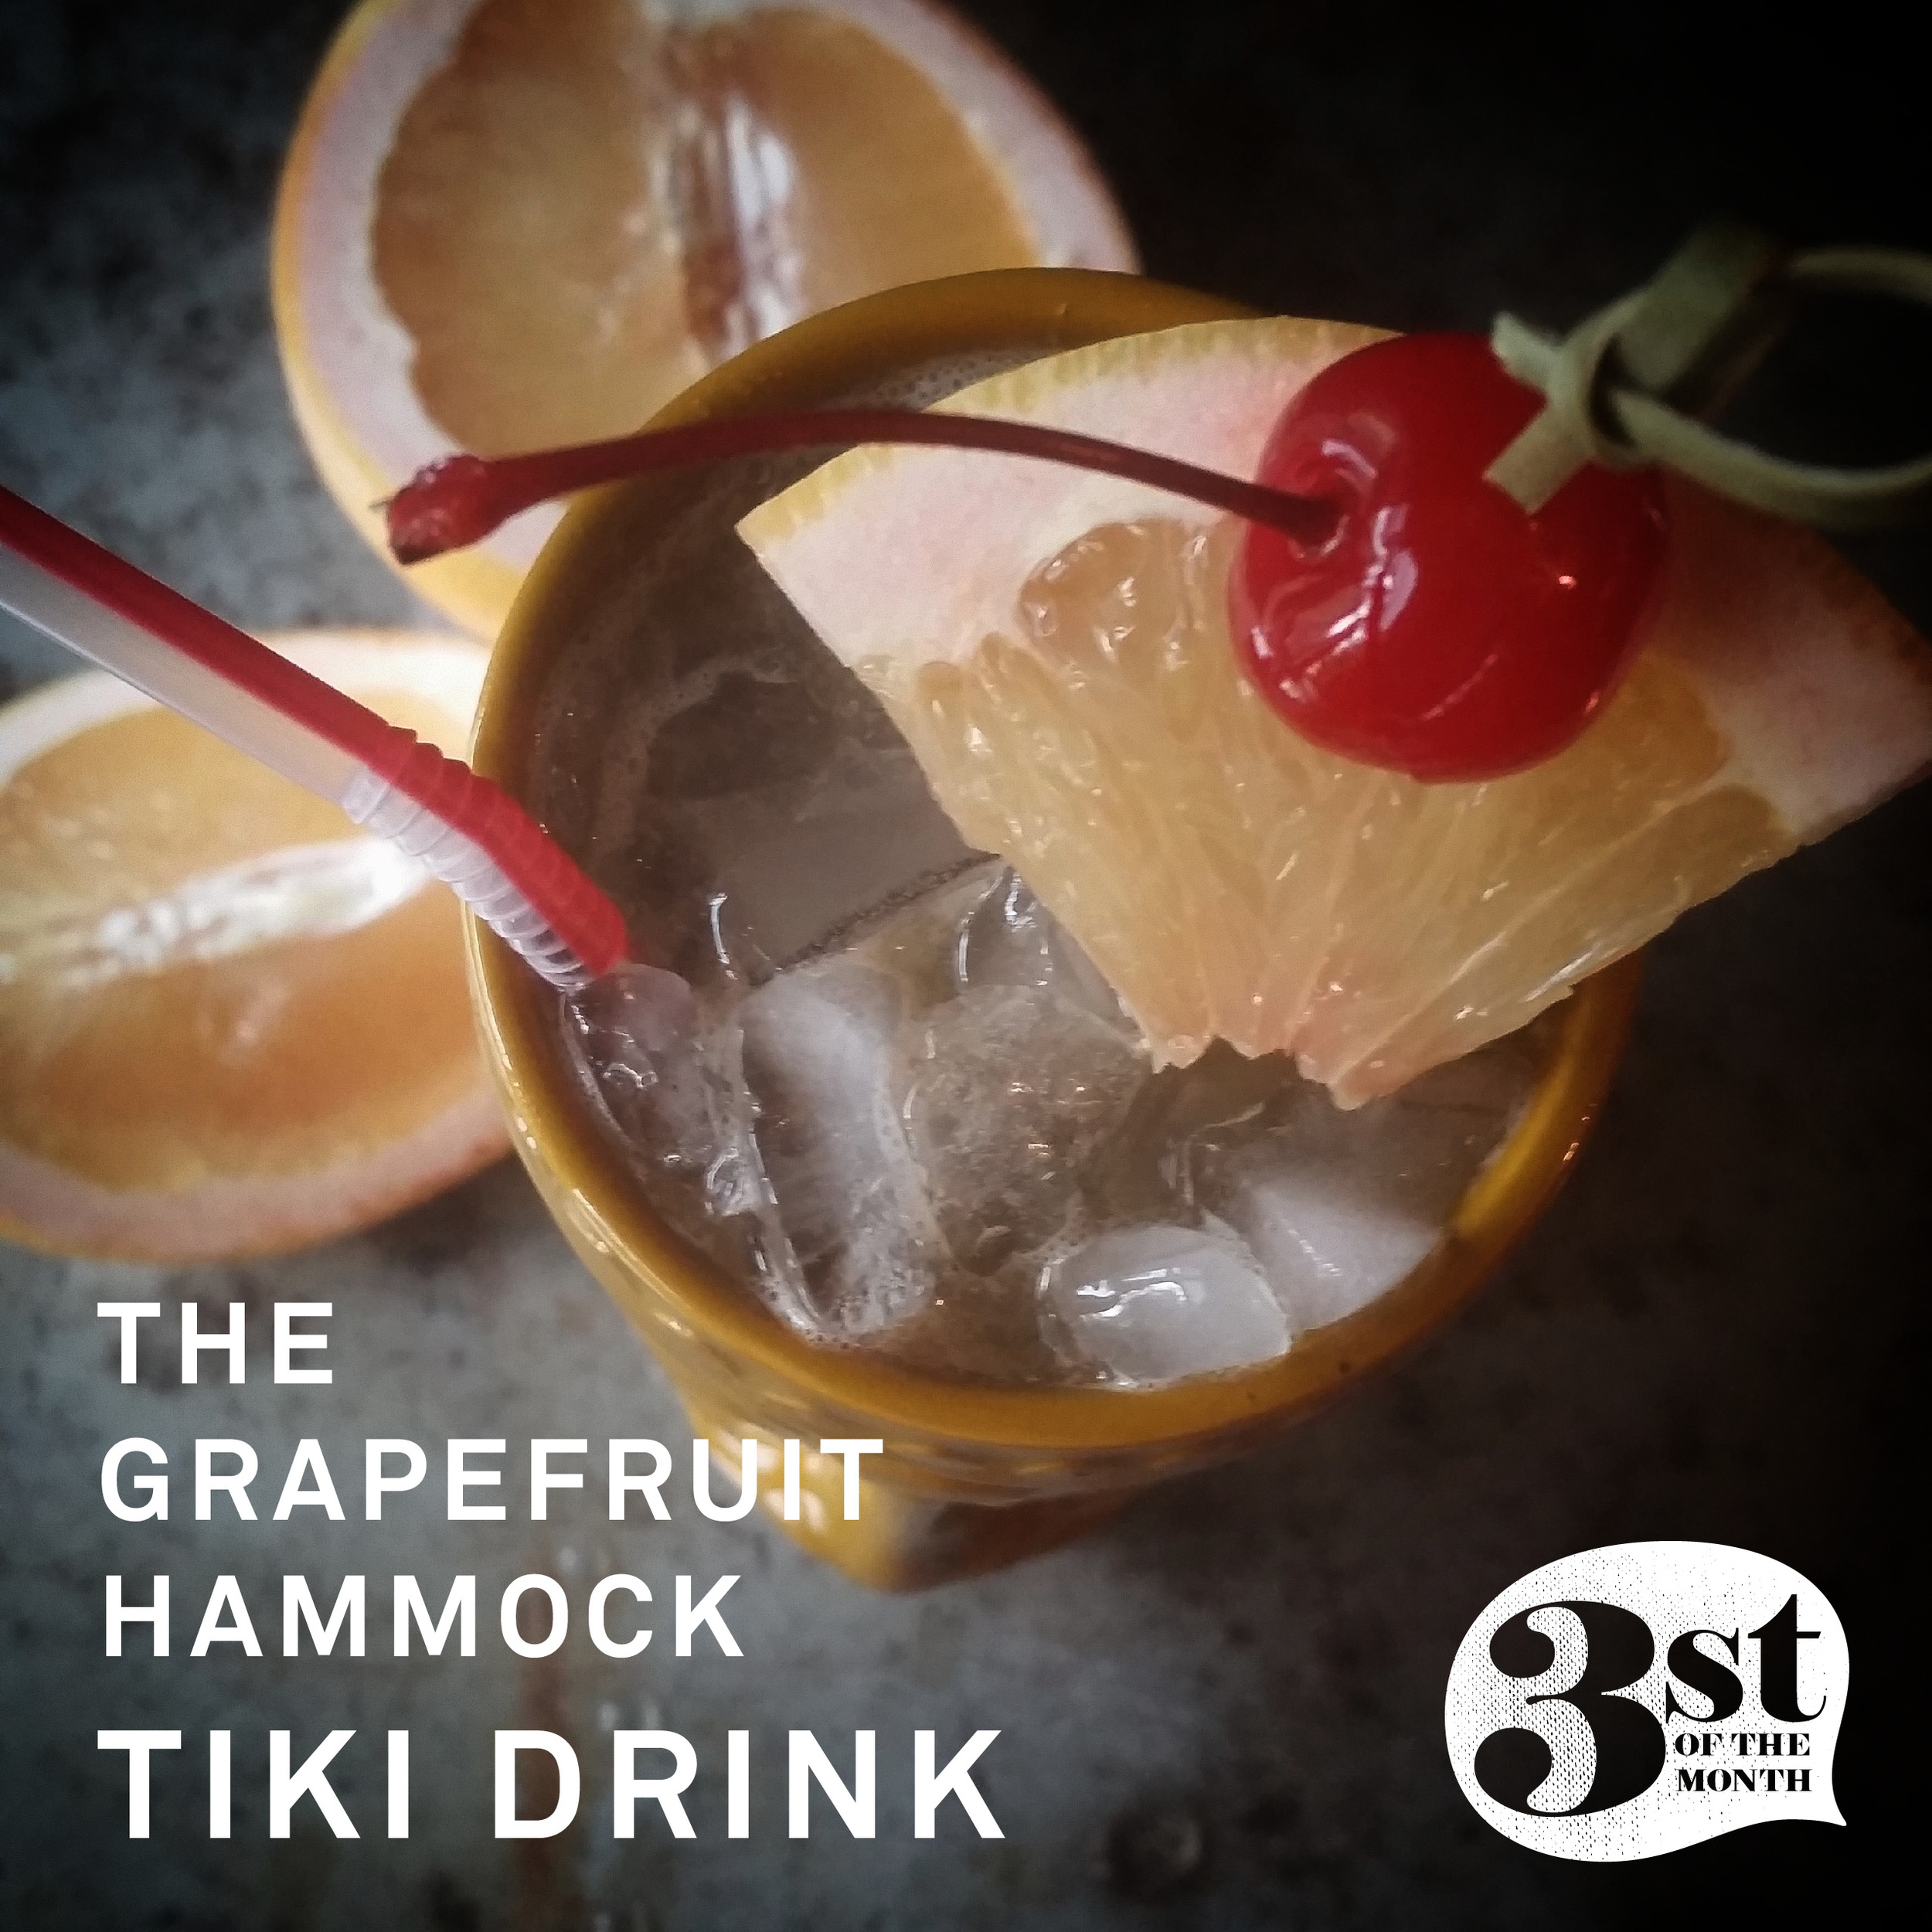 The Grapefruit Hammock - a refreshingly tart Tiki Drink from 3st of the Month